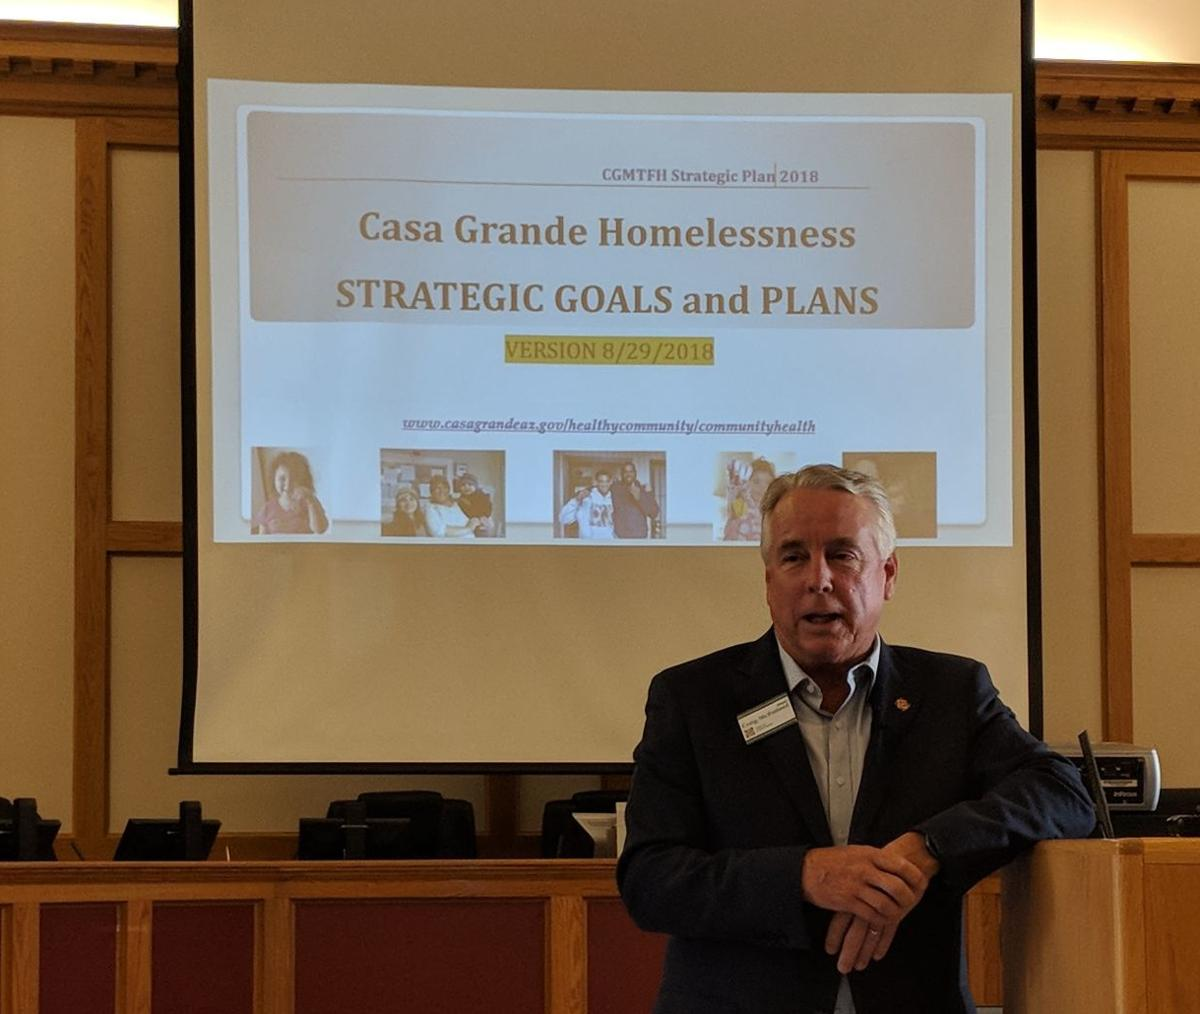 CG homelessness resource center to be opened in the fall